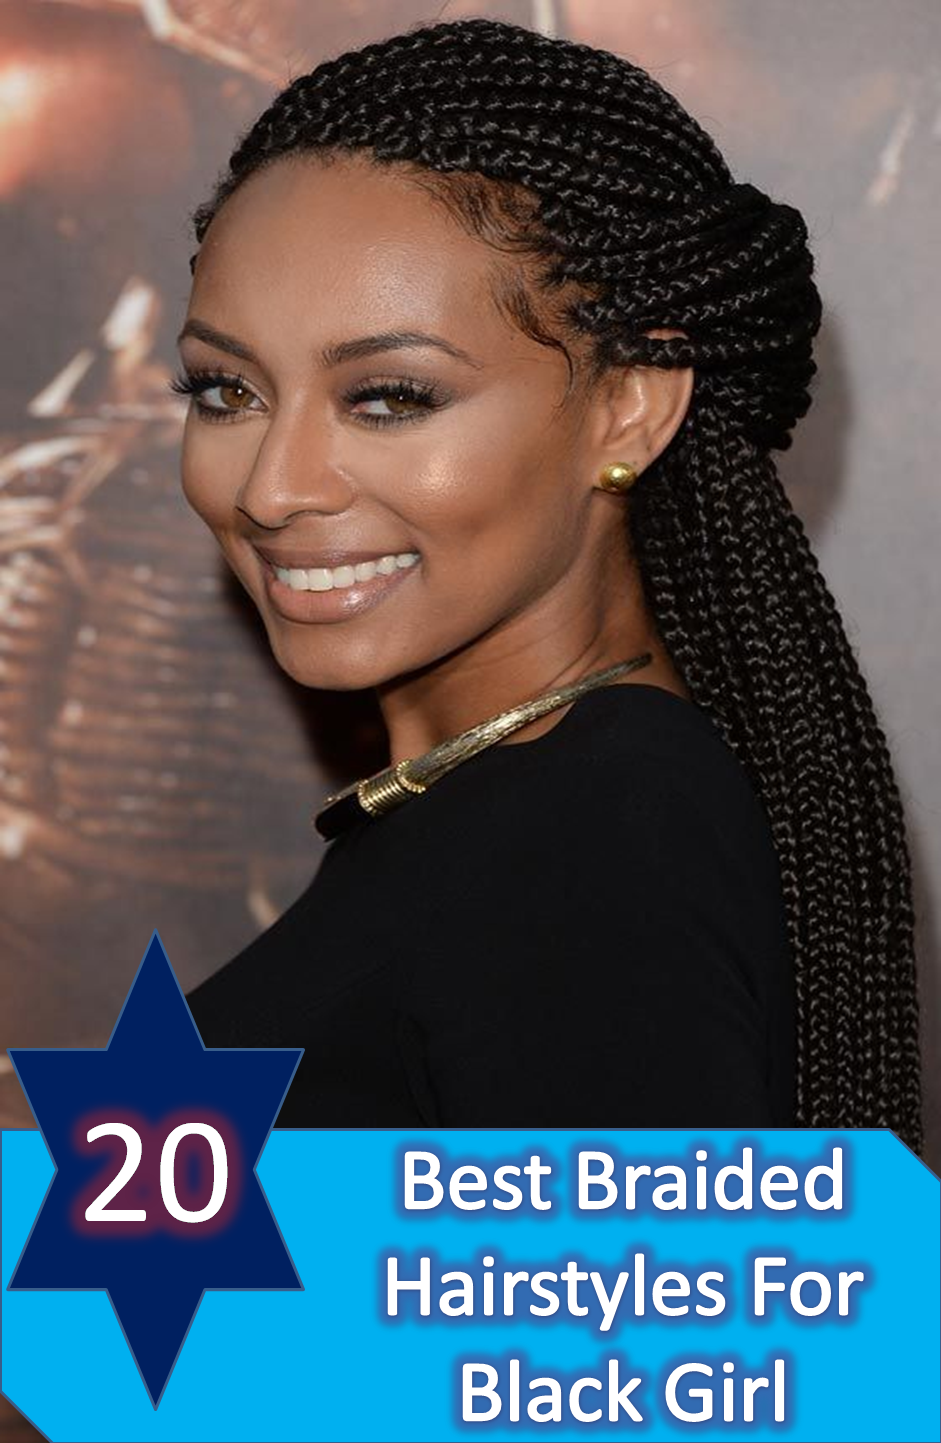 20 Amazing And Artistic Braided Hairstyles Ideas For Black Girl